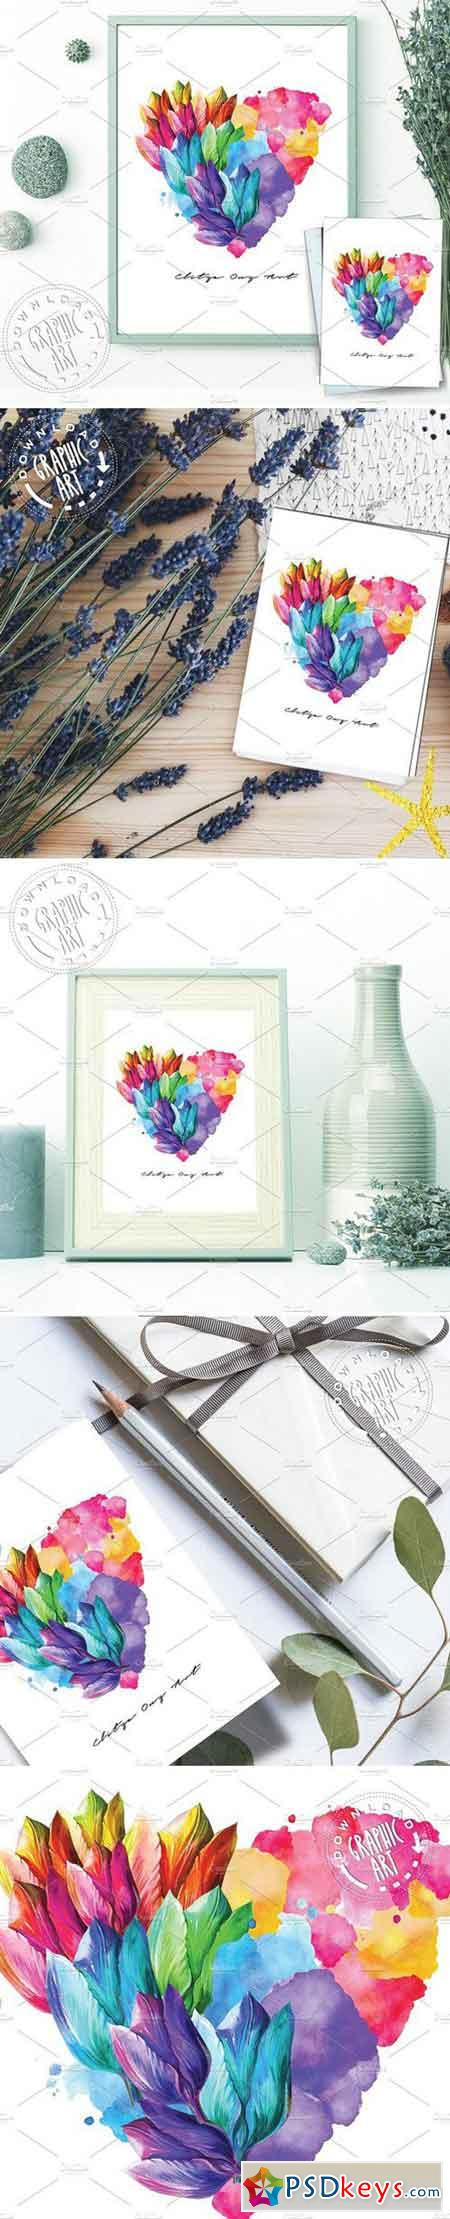 Prints Poster, Card -Flower Heart 2403151